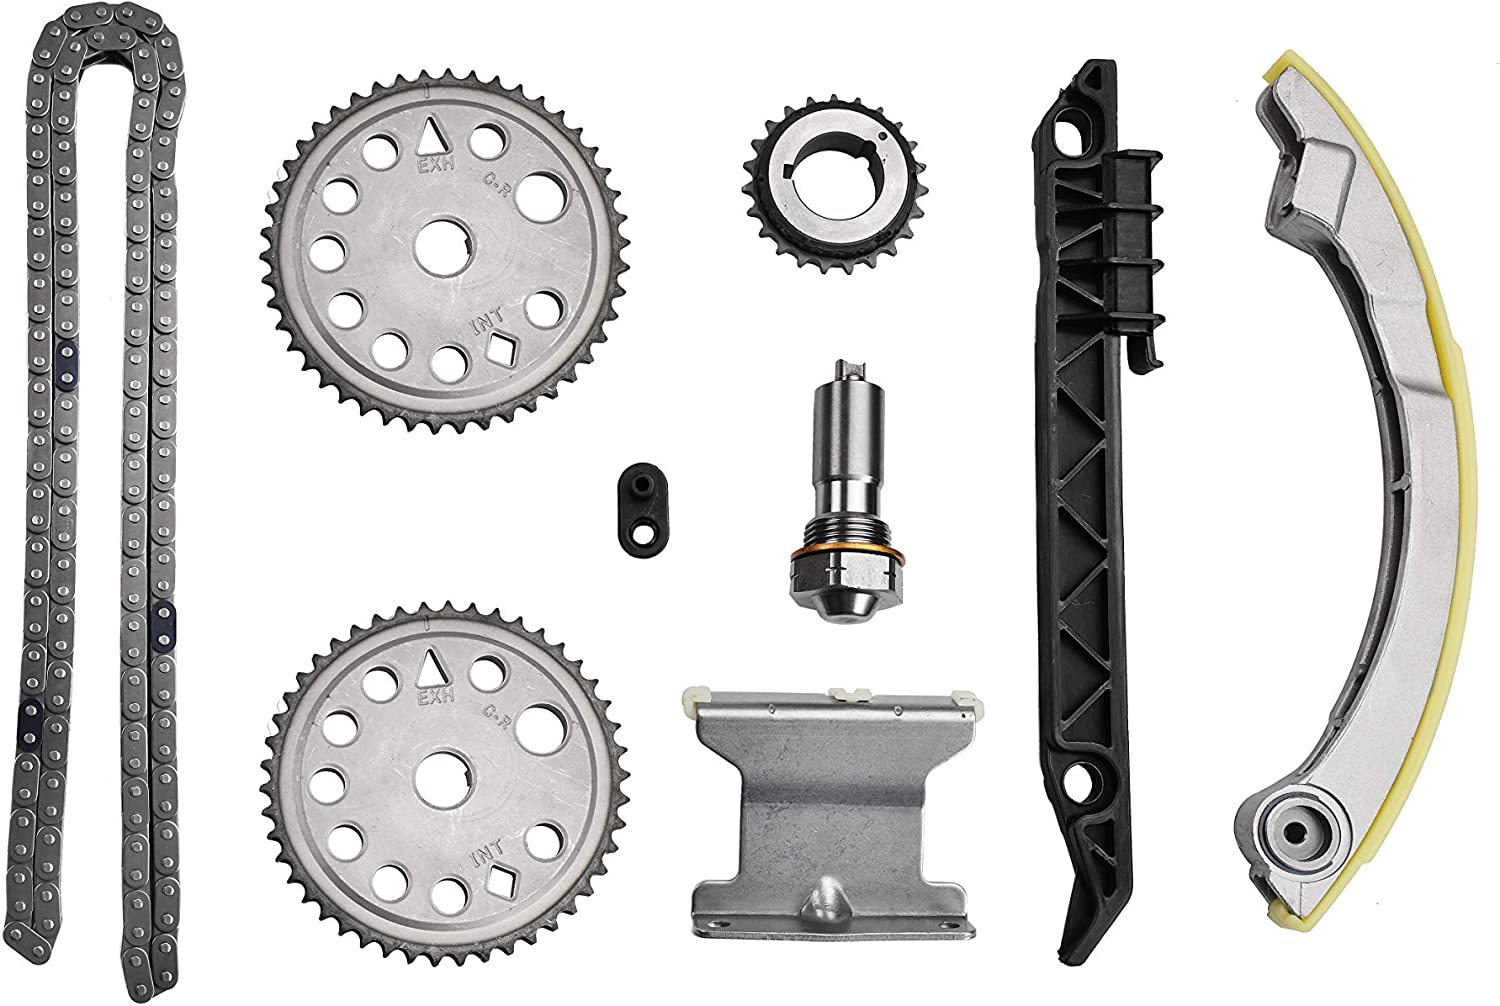 ADIGARAUTO 94201S Timing Chain Kit Tensioner Guide Rail Crank Sprocket Shaft Sprocket Replacement Compatible With Chevrolet Malibu 8-13 Equinox 10-15 Buick L4 2.0L 2.2L 2.4L